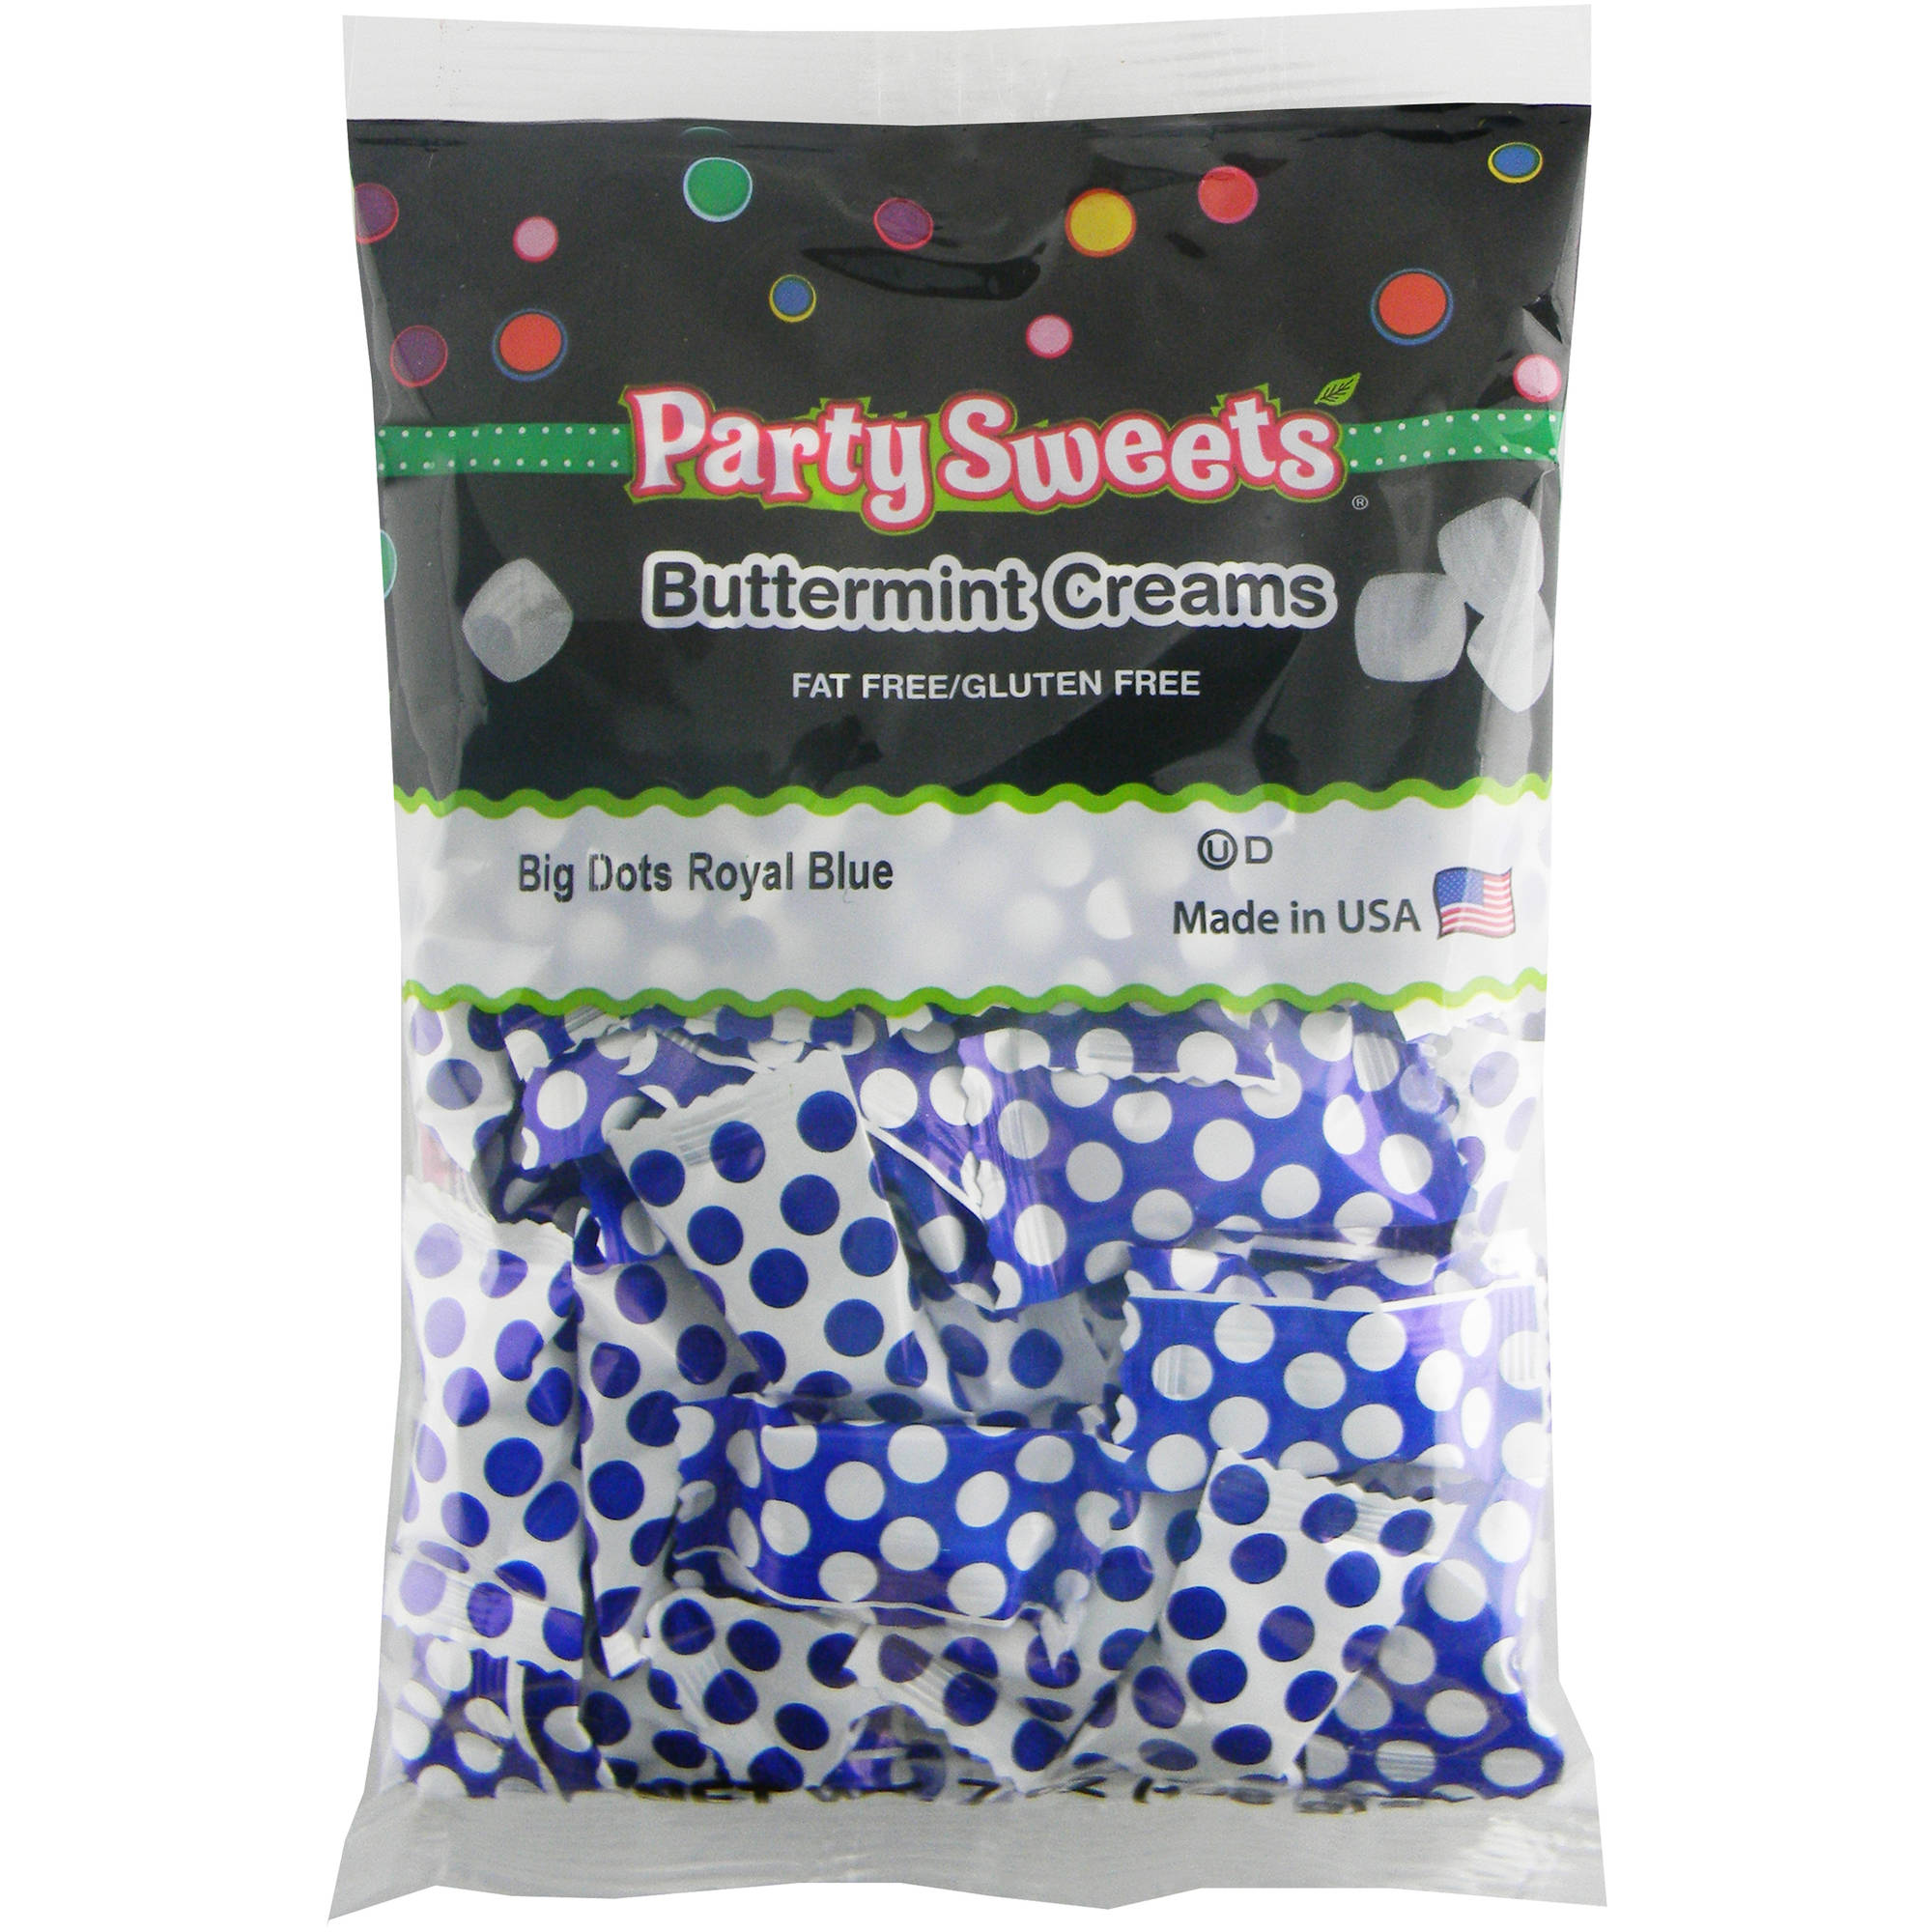 Party Sweets Big Dots Royal Blue Buttermint Creams Candy, 7 oz